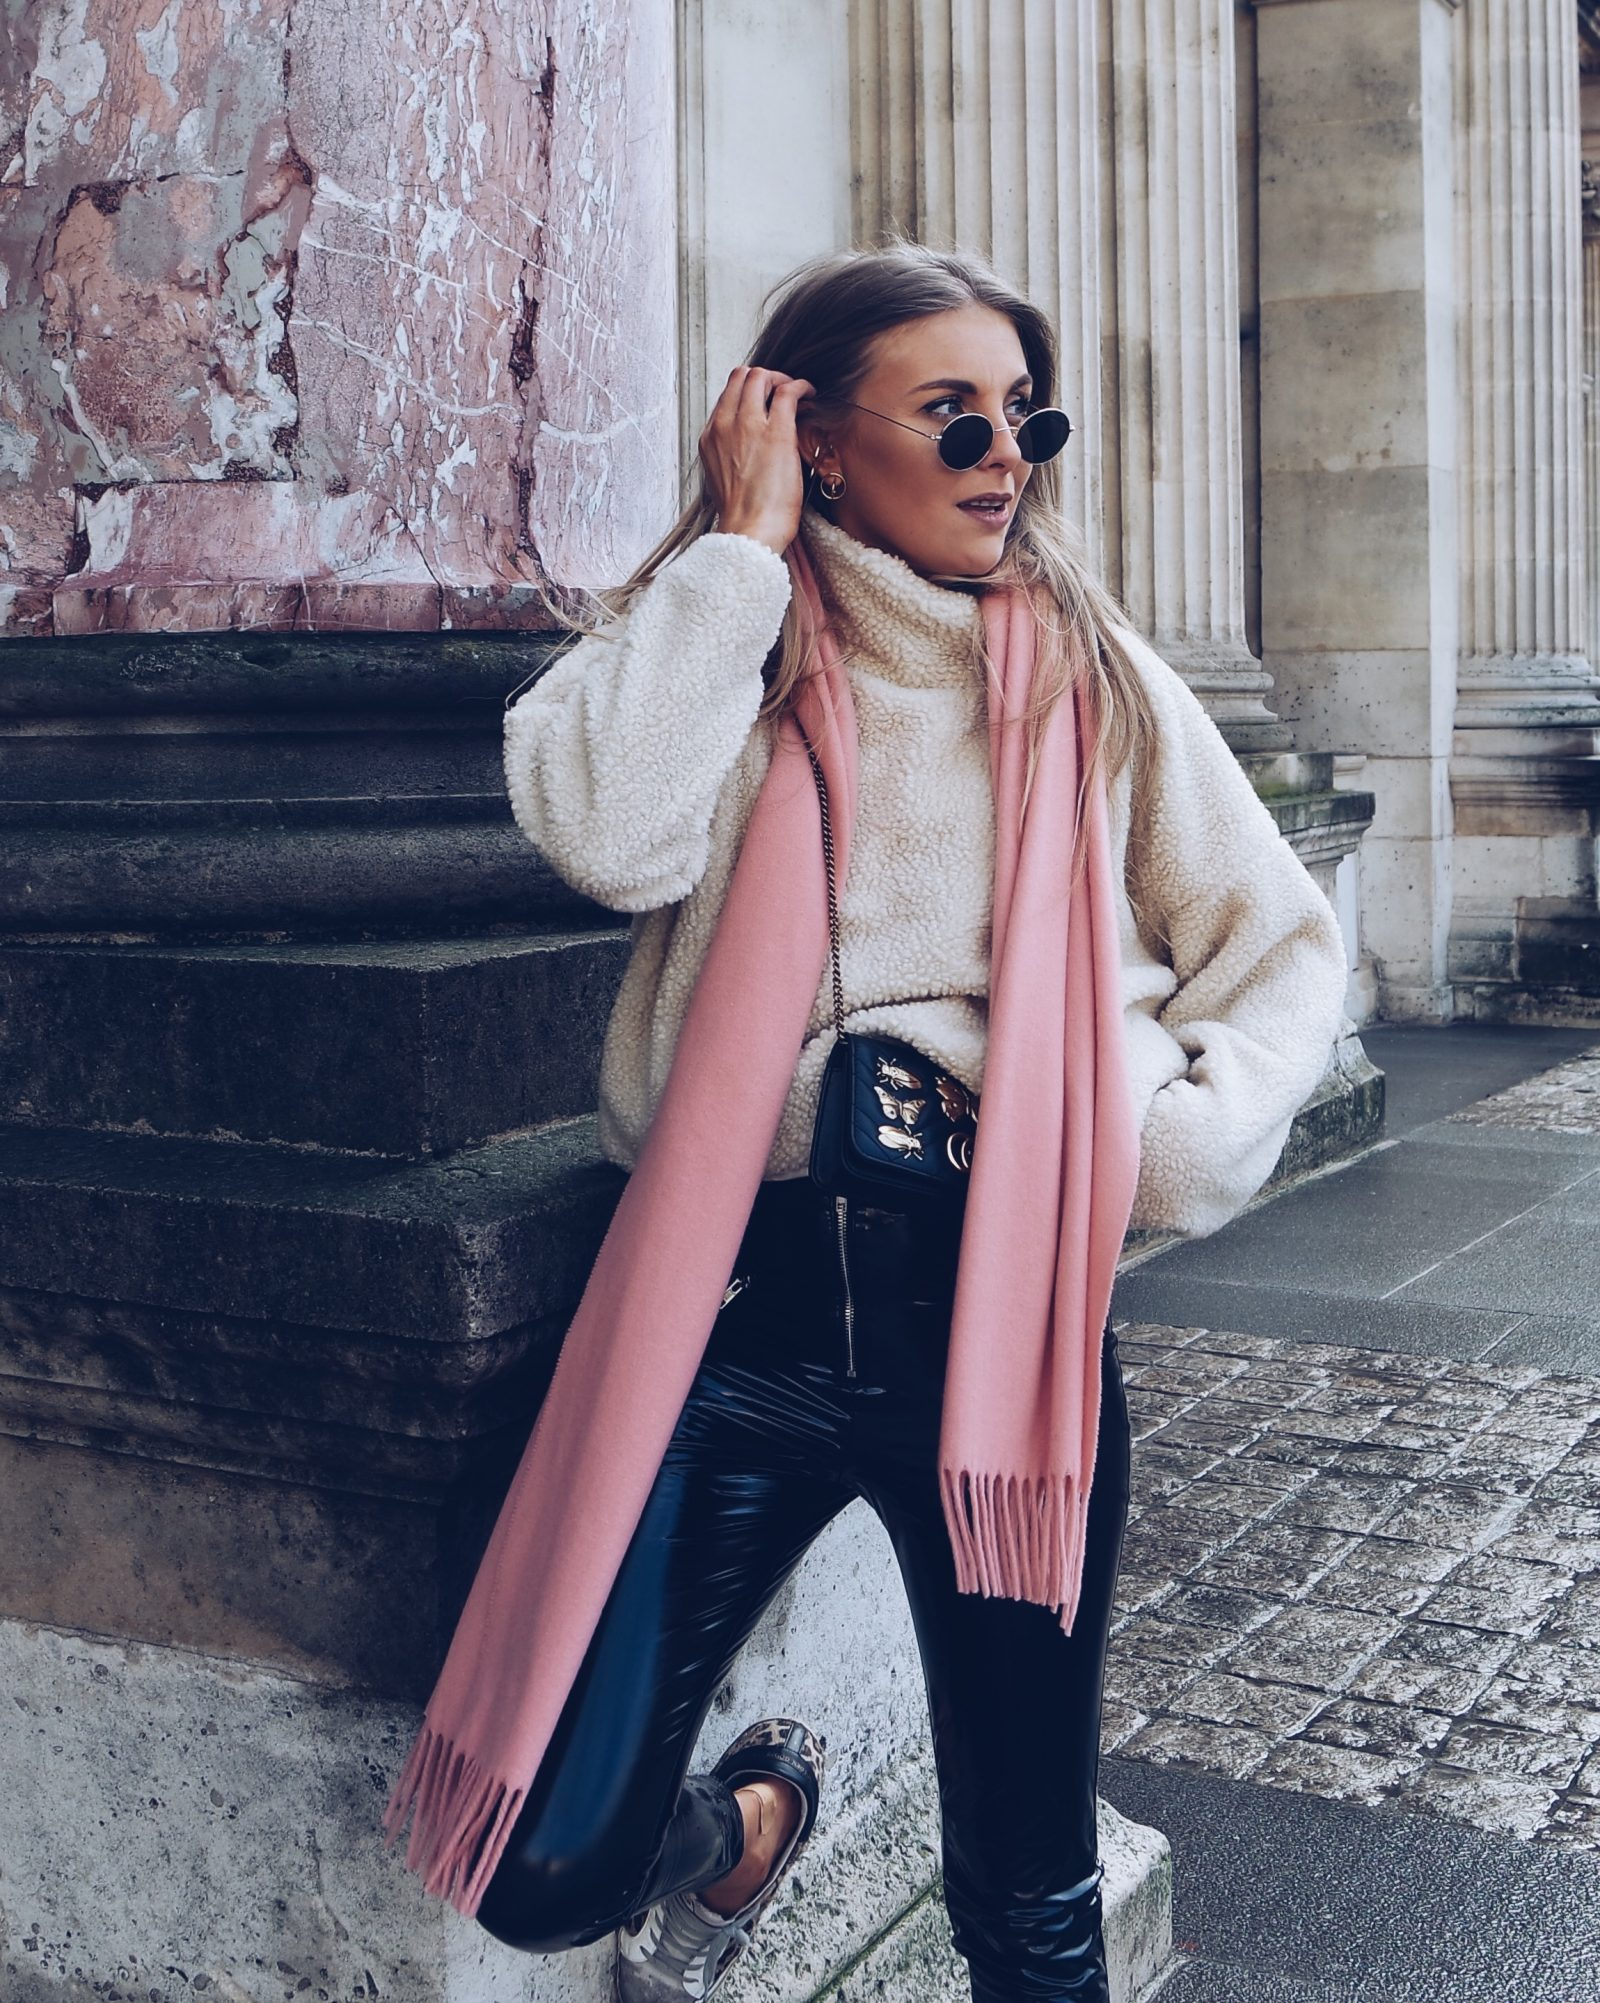 Vinyl Trousers -Street Style Outfit Ideas